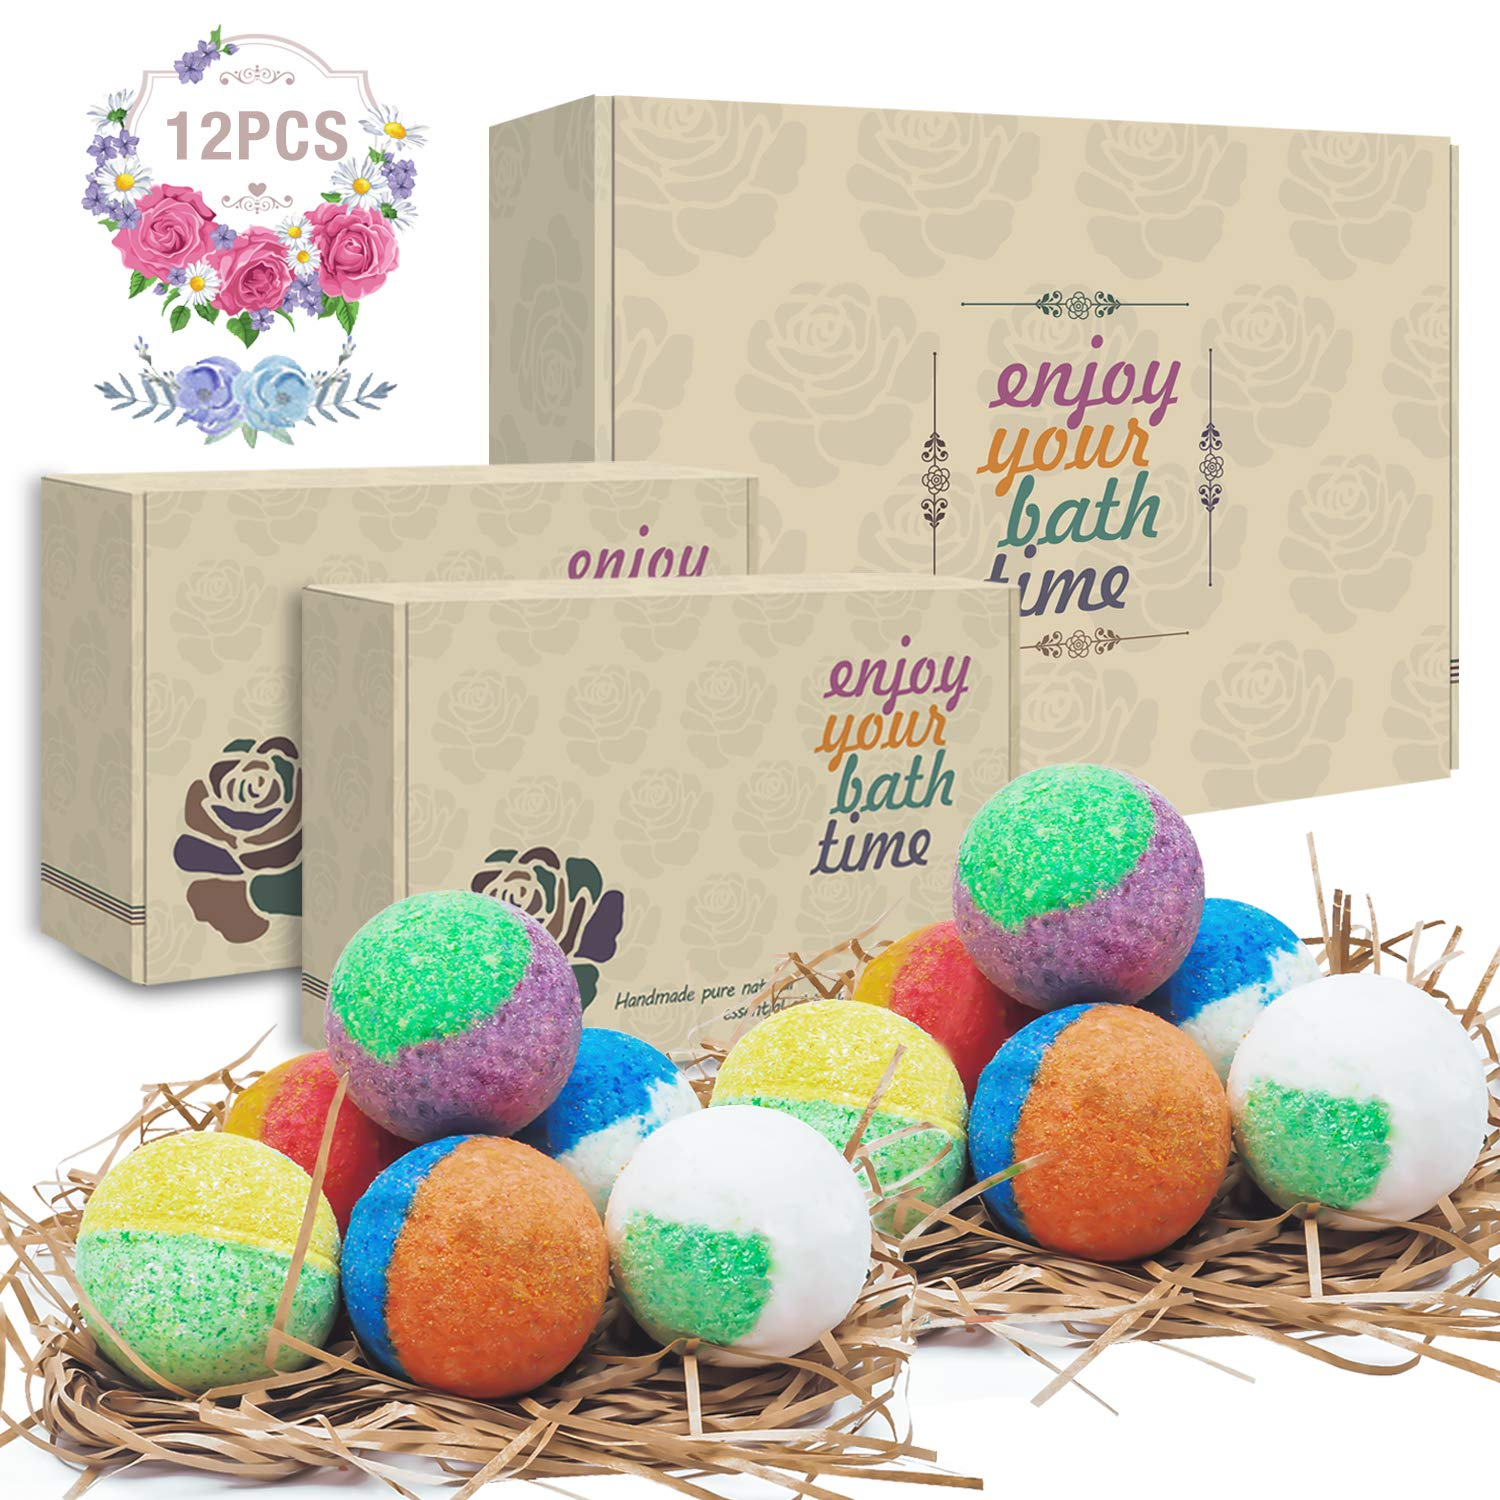 12 Organic & Natural Bath Bombs, Handmade Lush Bubble Bath Bomb Gift Set, Rich in Essential Oil, Shea Butter, Coconut Oil, Grape Seed Oil, Fizzy Spa to Moisturize Dry Skin, Perfect Gift idea For Women